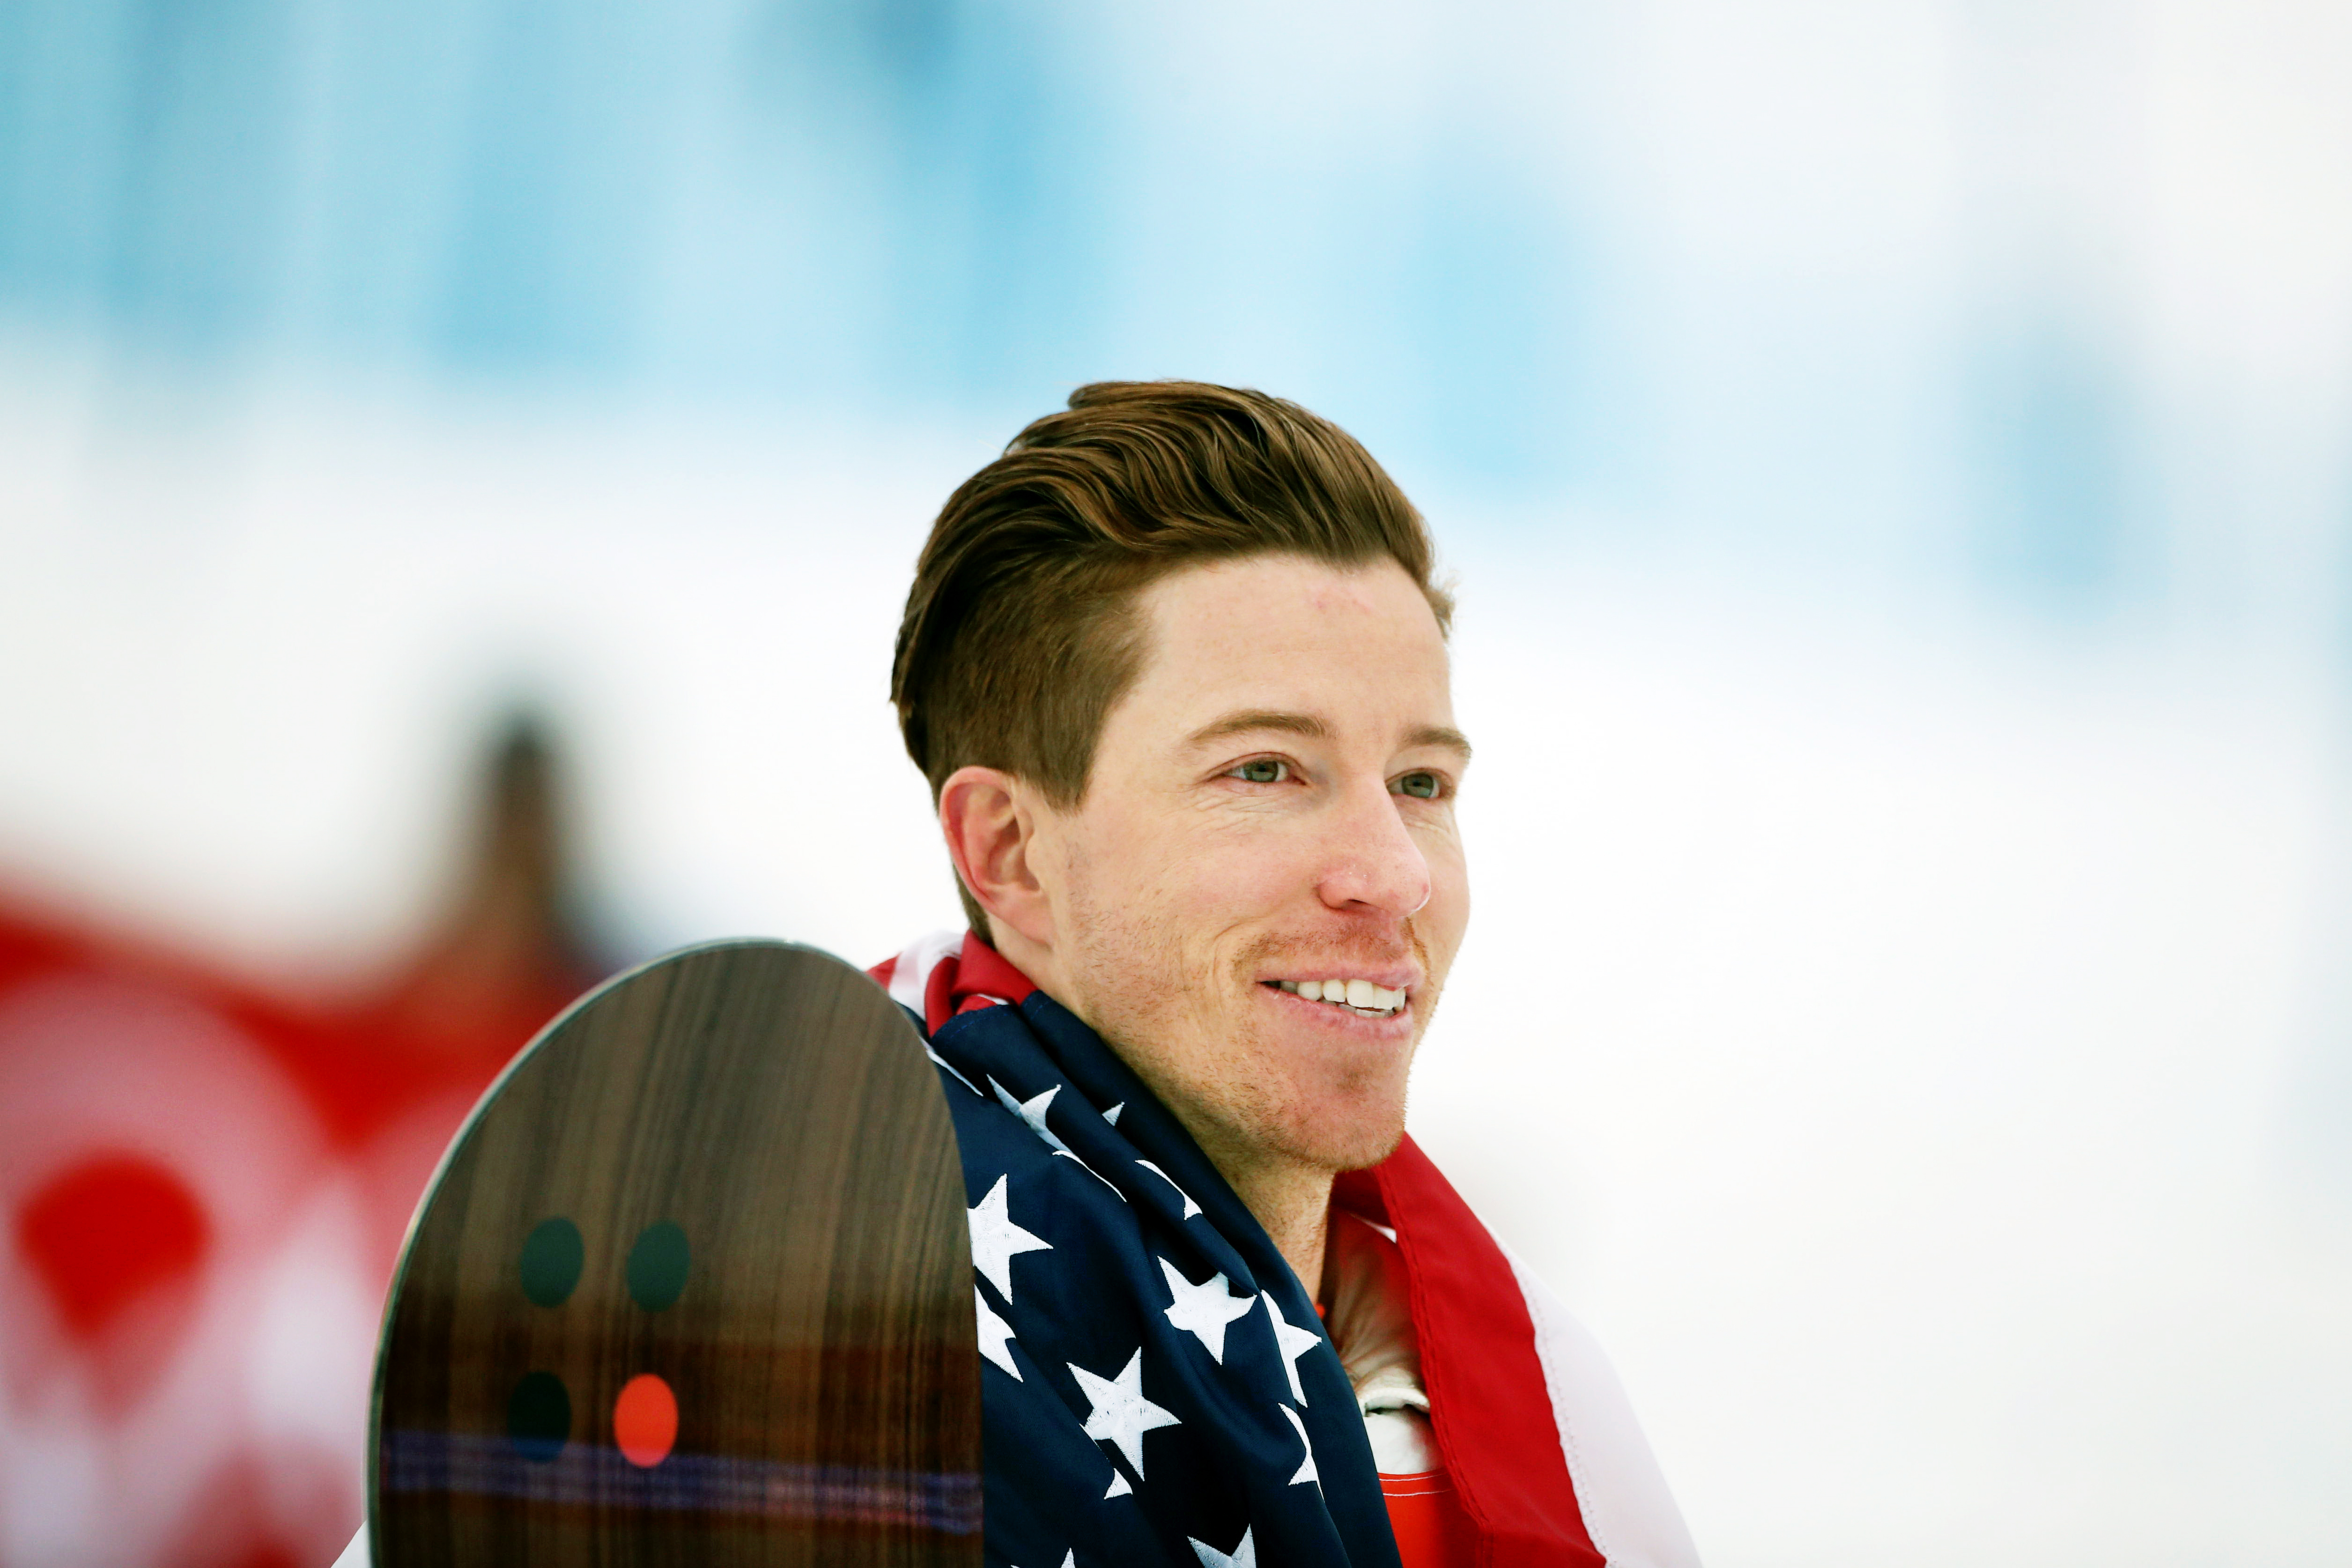 ce4746b5a8f1 Shaun White of the United States celebrates with the American flag after  winning the gold medal